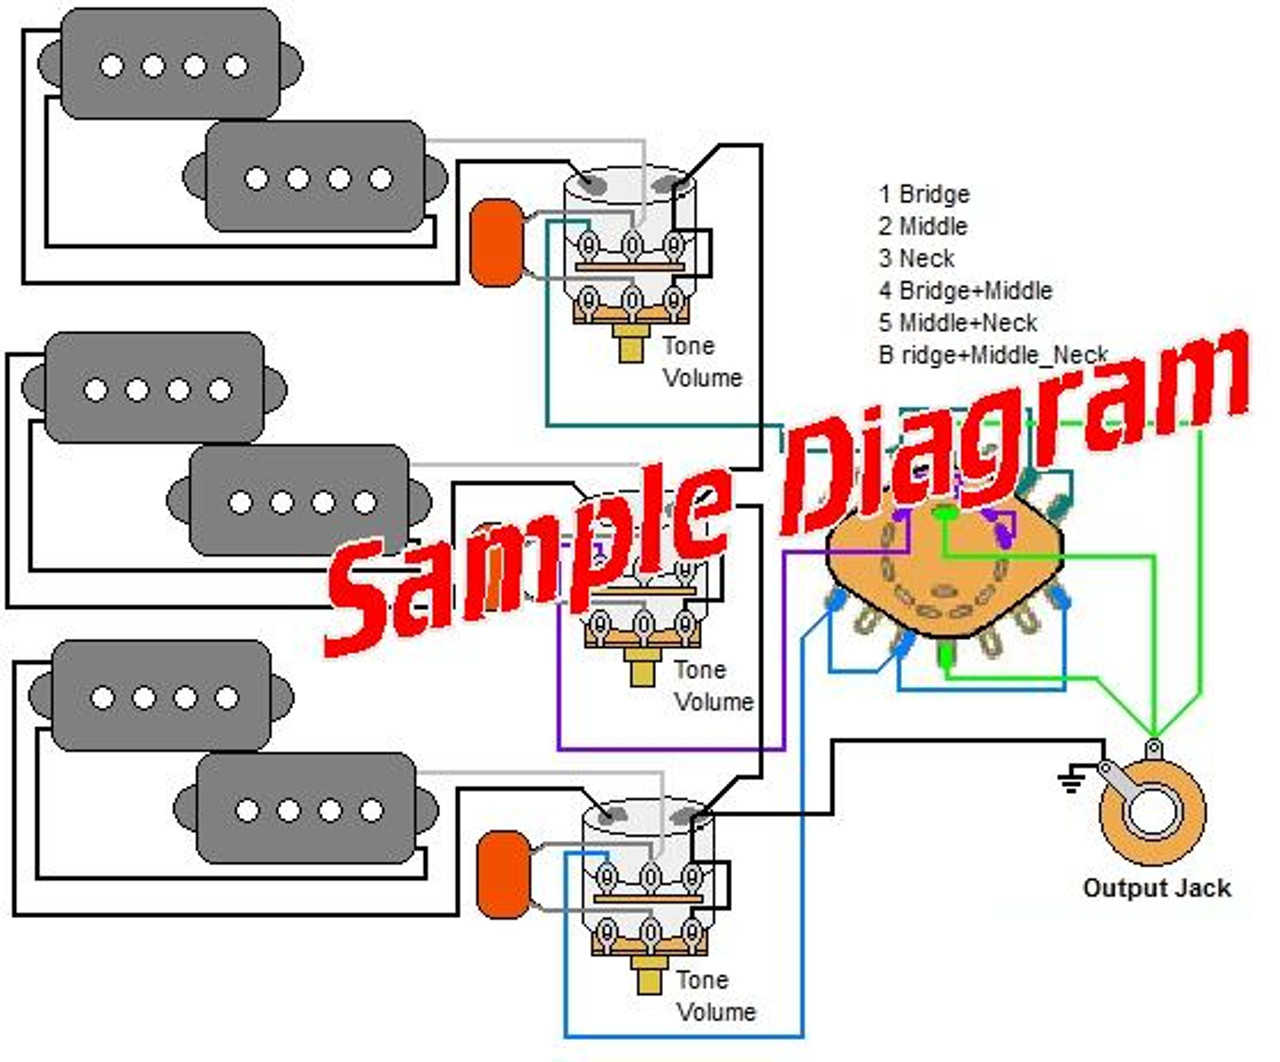 diagram] fever brand guitar wiring diagrams full version hd quality wiring  diagrams - rewiringasia.webgif.it  webgif.it